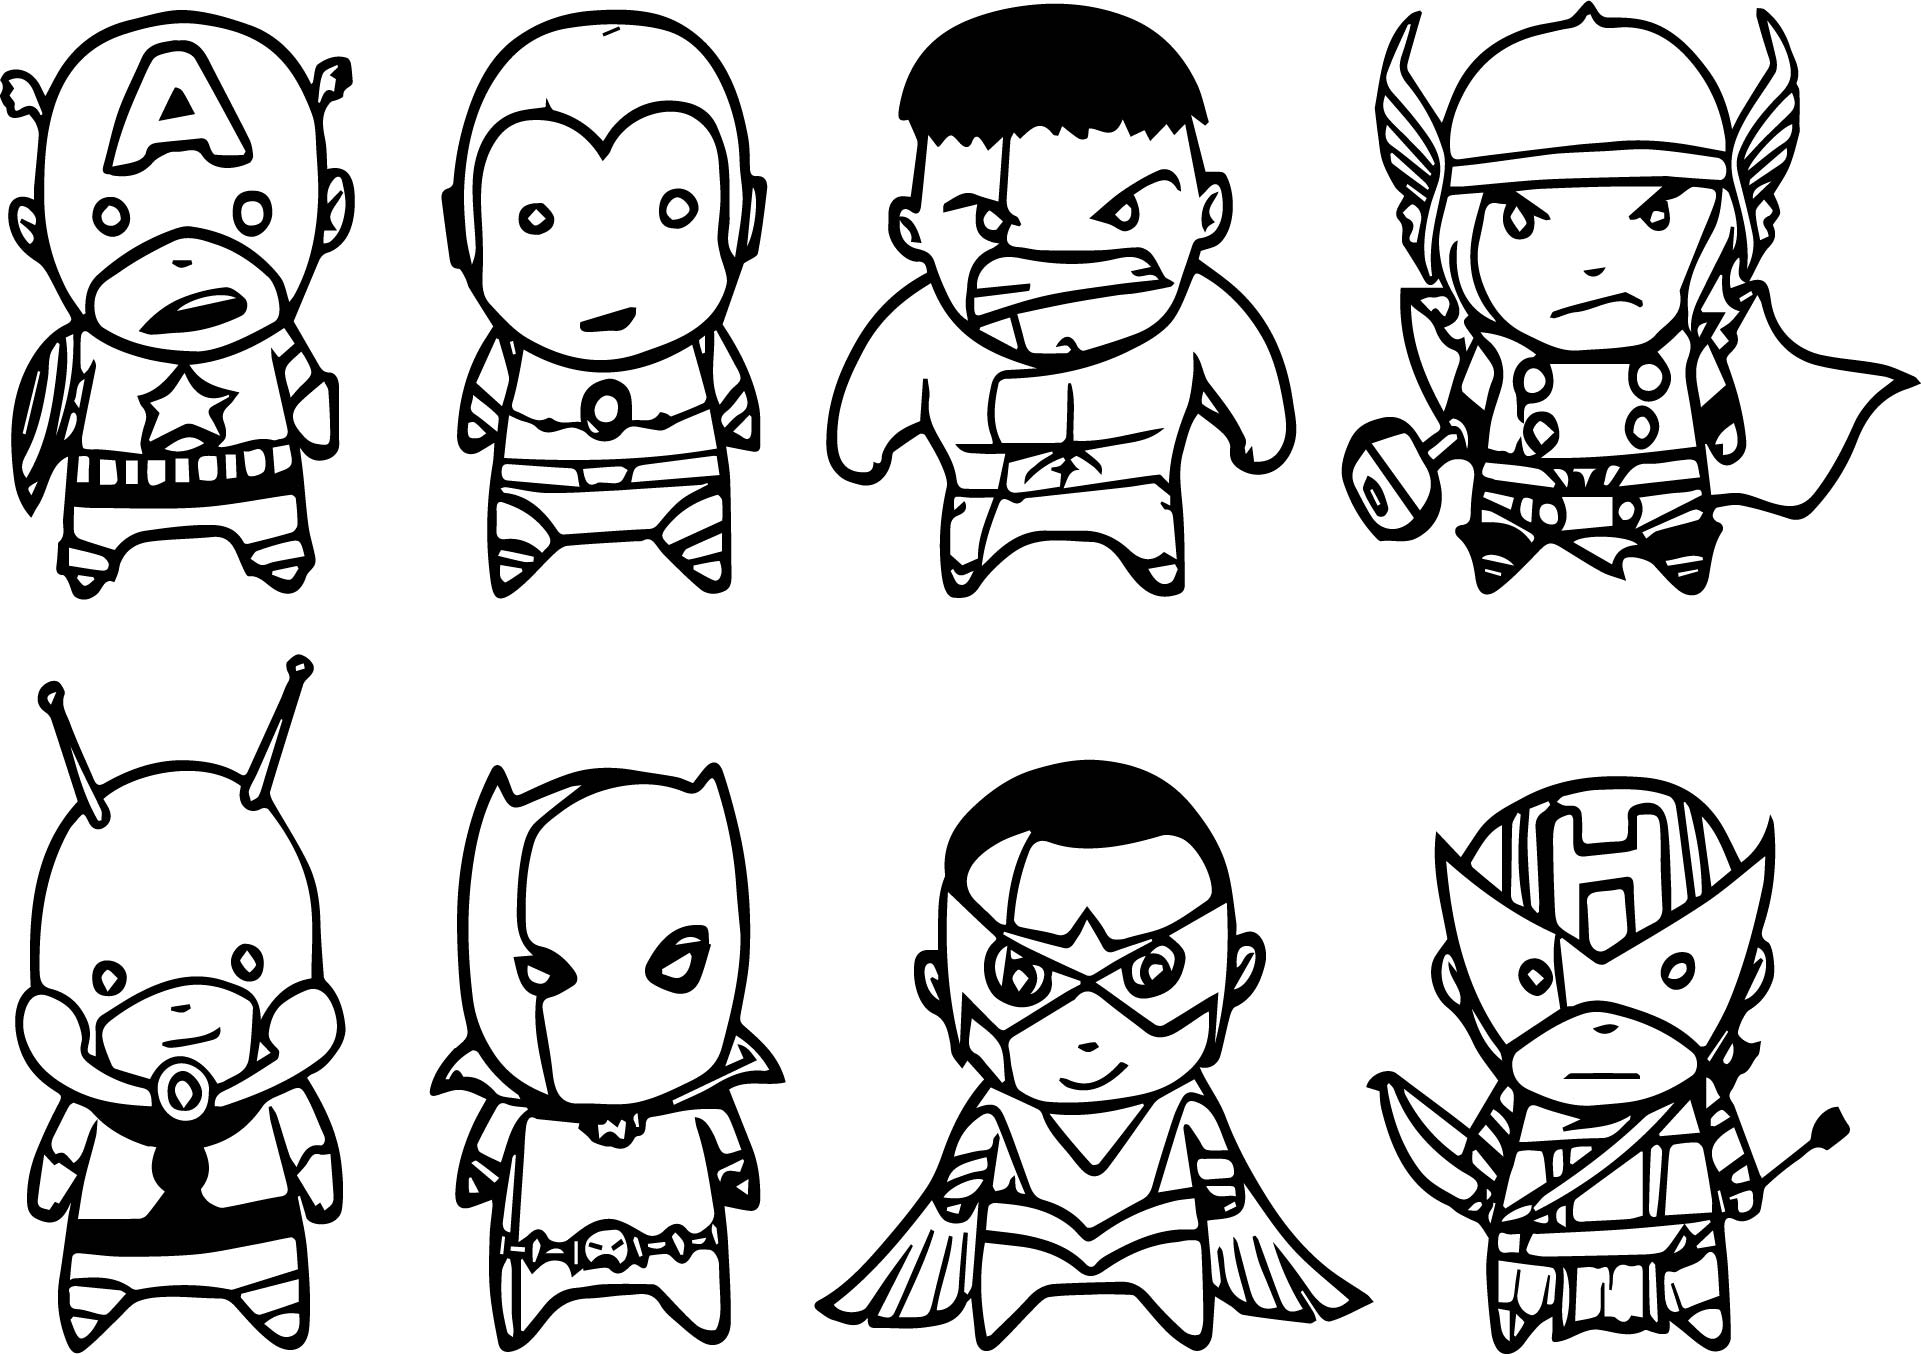 coloring avengers printables coloring pages for kids free images iron man avengers printables coloring avengers